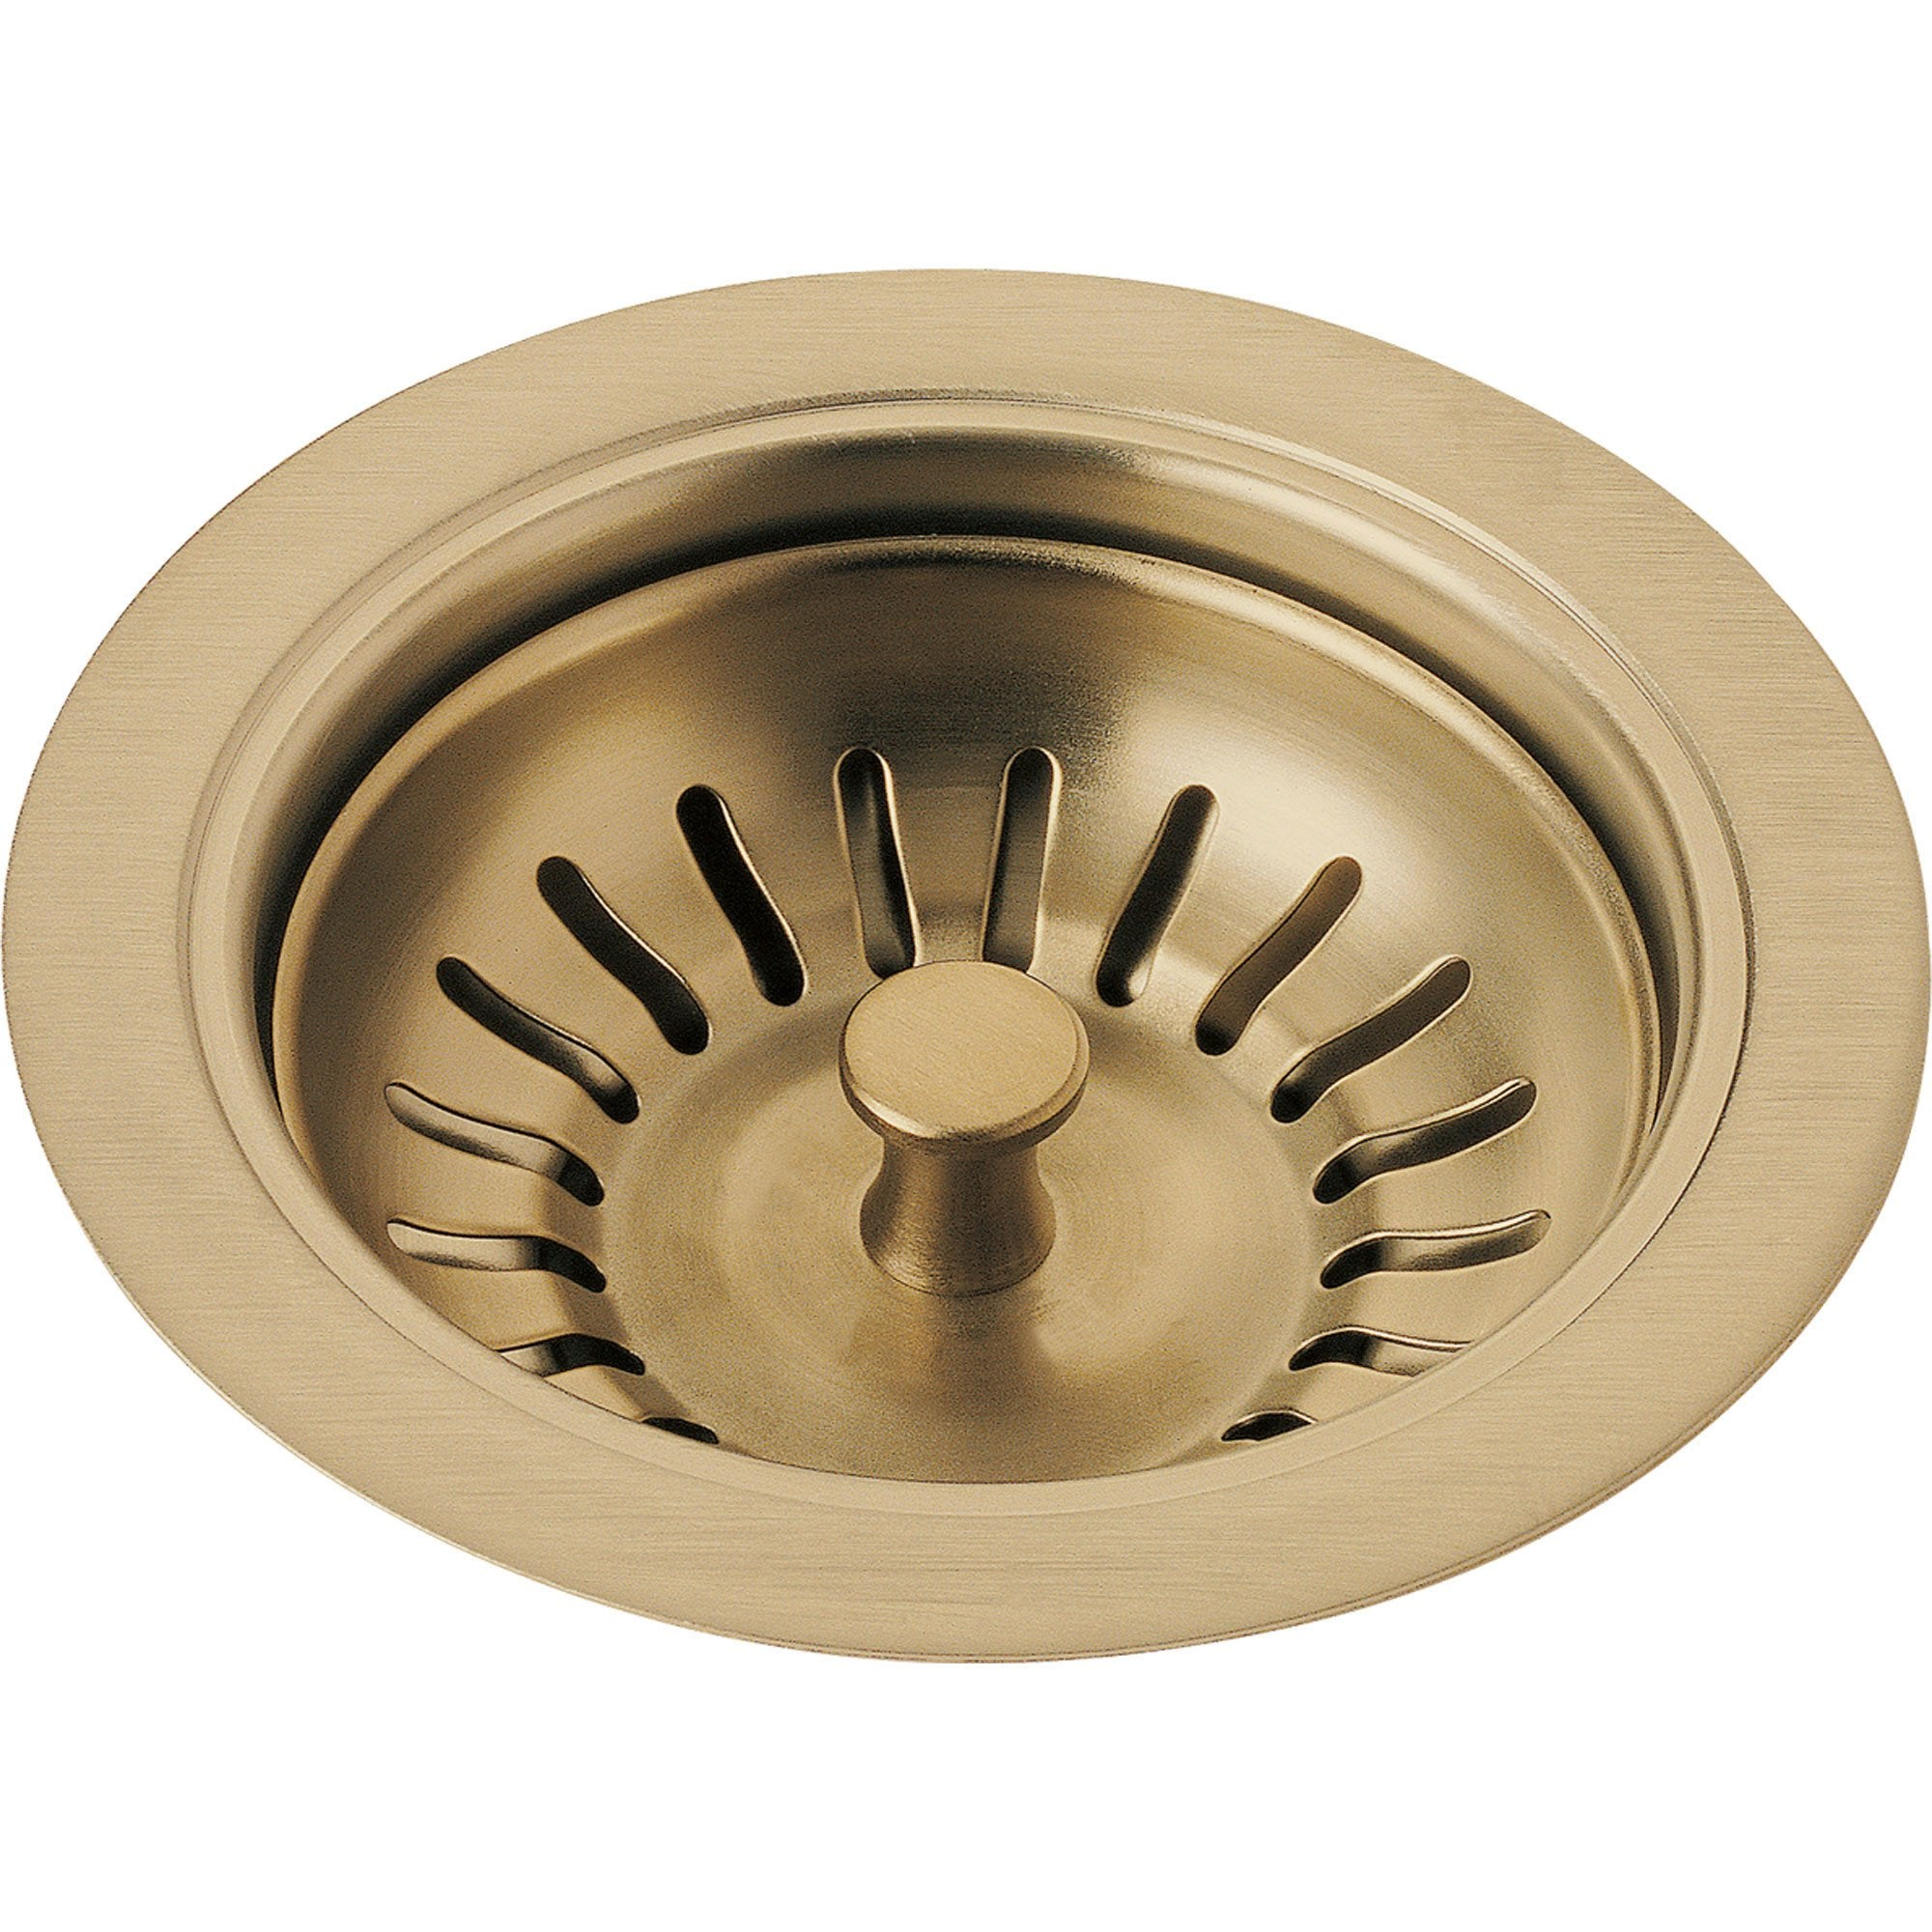 Delta 4-1/2 inch Champagne Bronze Kitchen Sink Flange and Strainer 638404